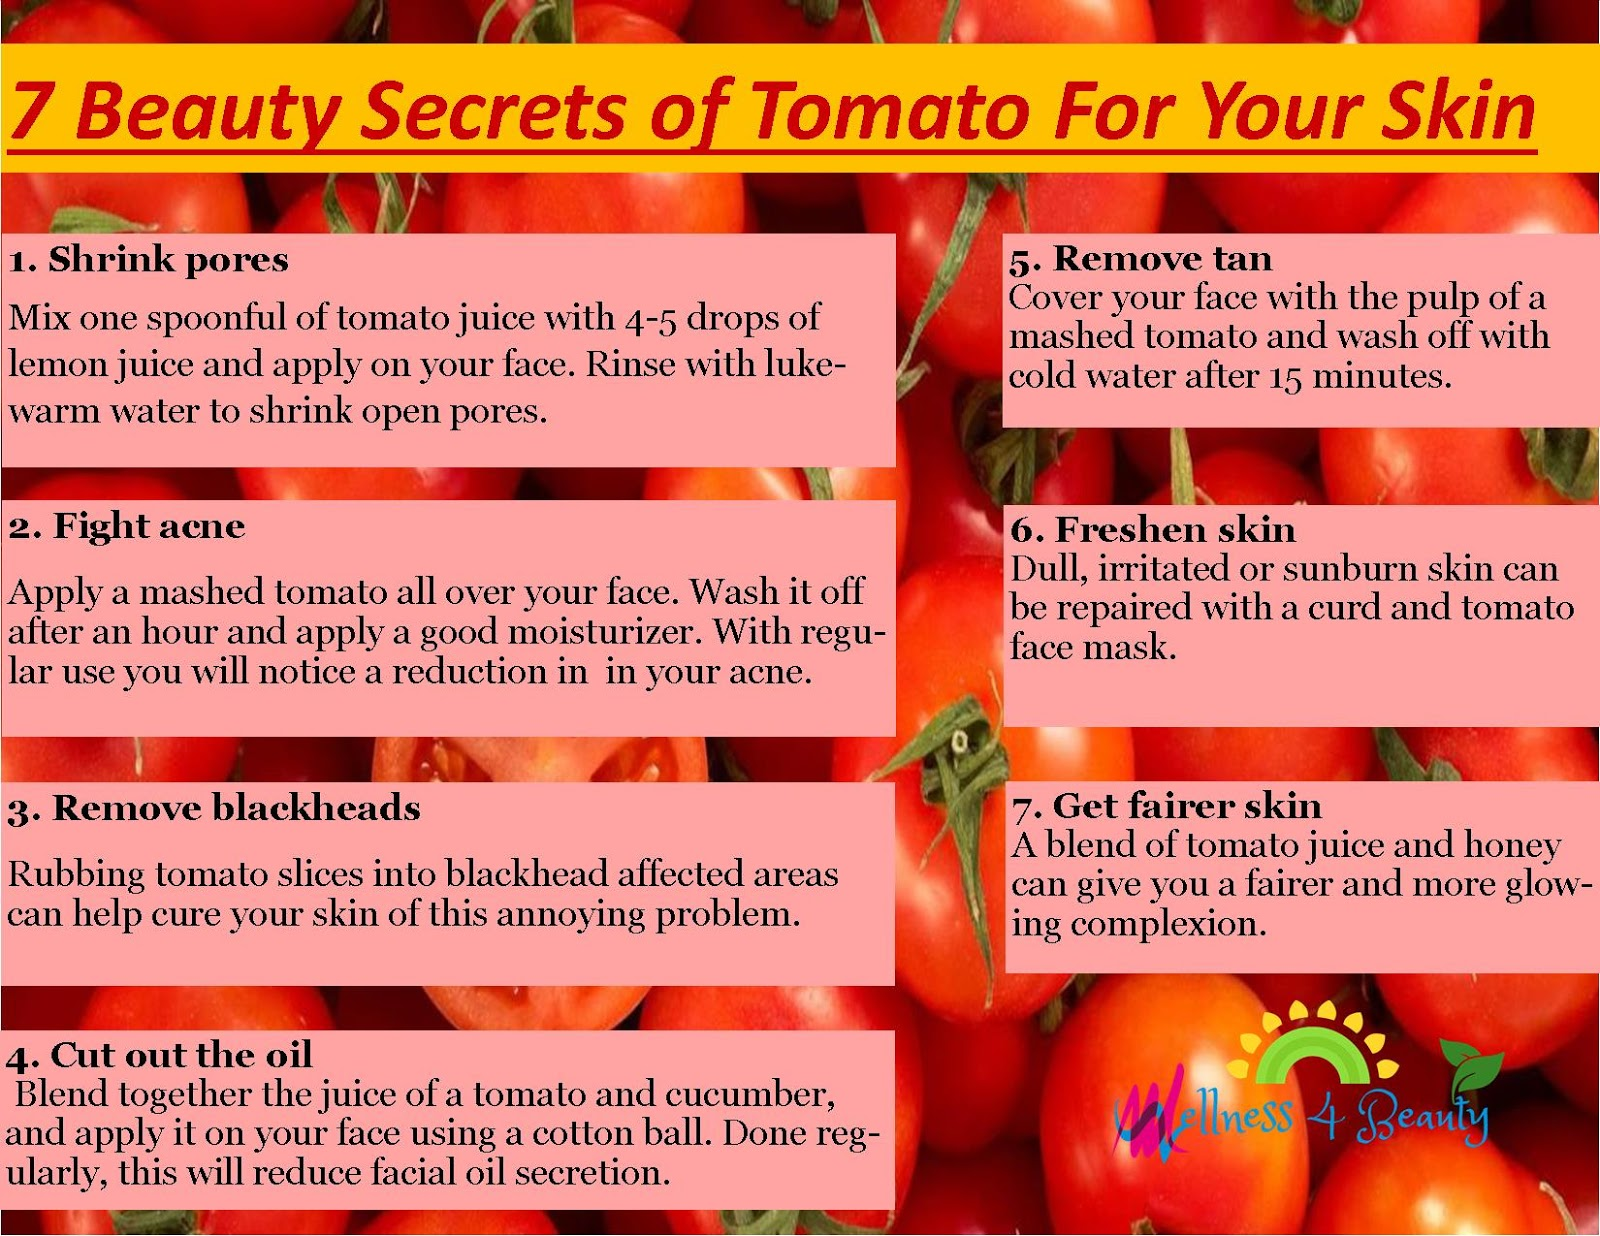 7 amazing reasons tomato is great for your skin & face